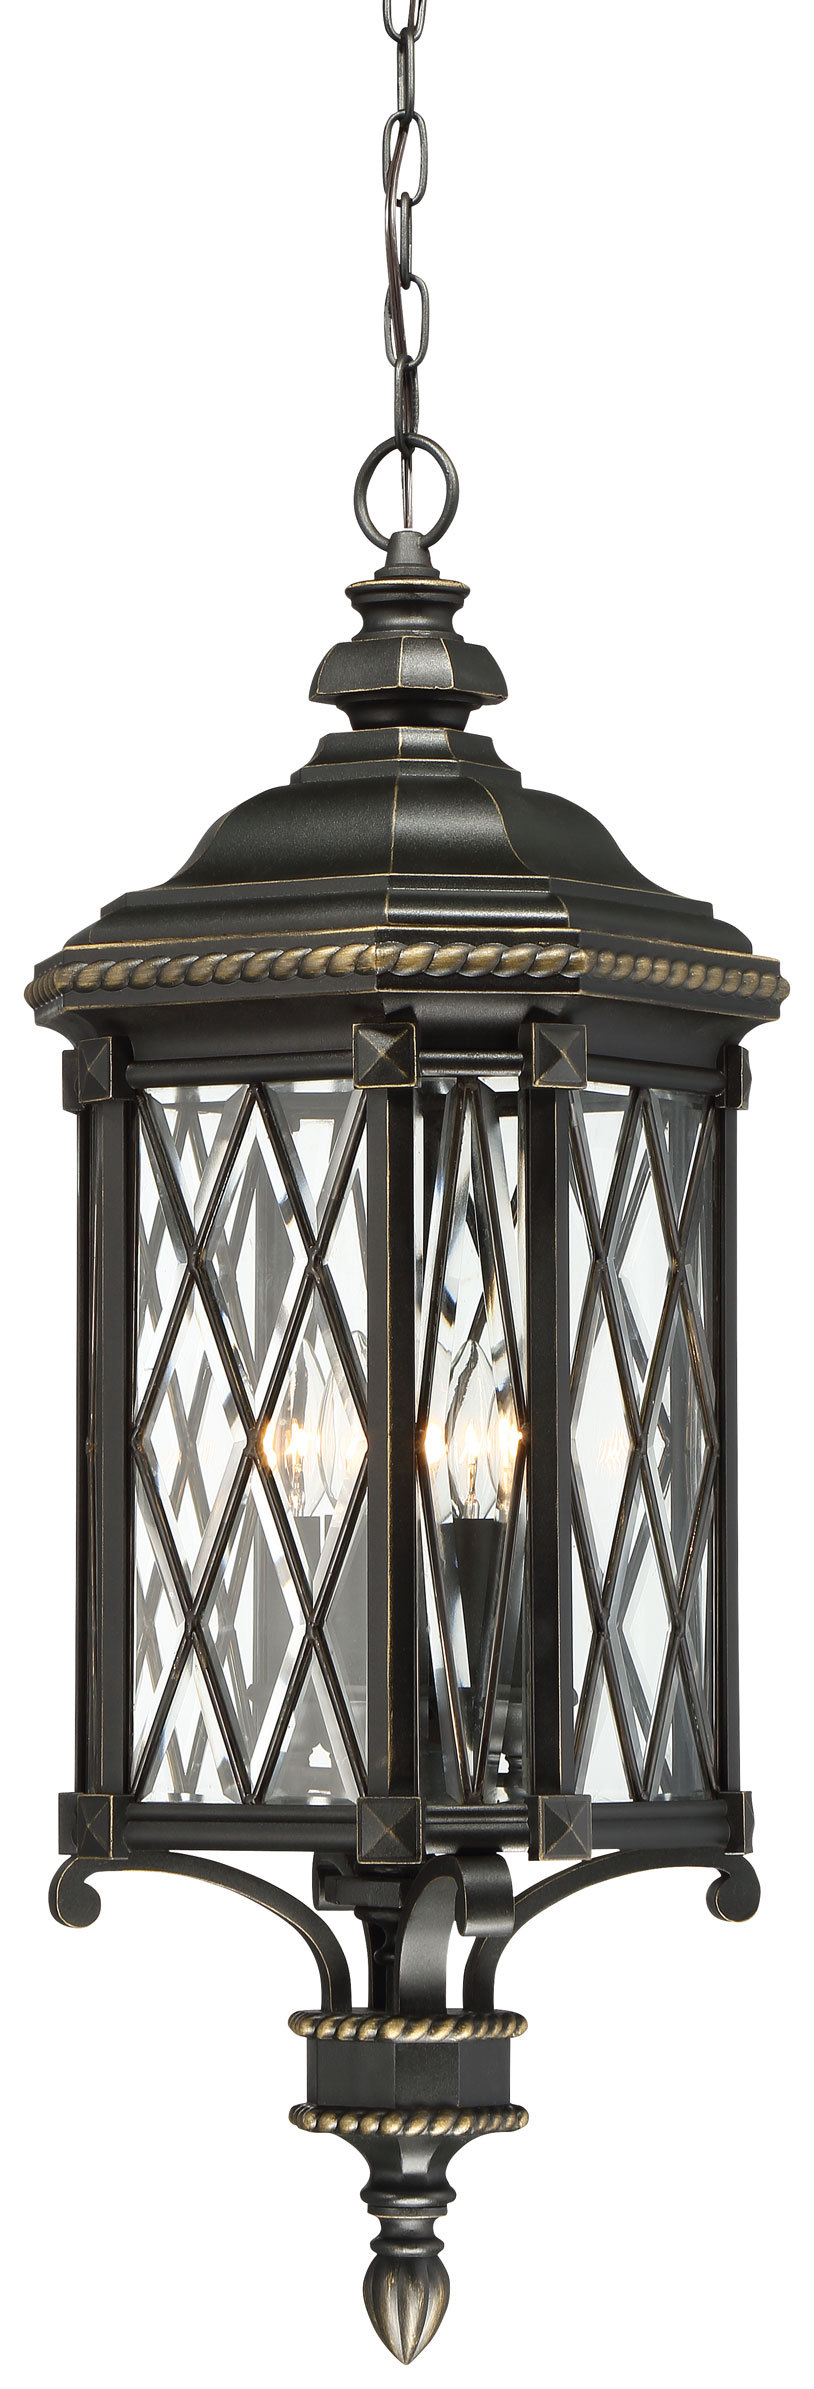 MNK 9324-585 BEXLEY MANOR 4 LIGHT CHAIN HUNG 4X40B10.5, Candelaba